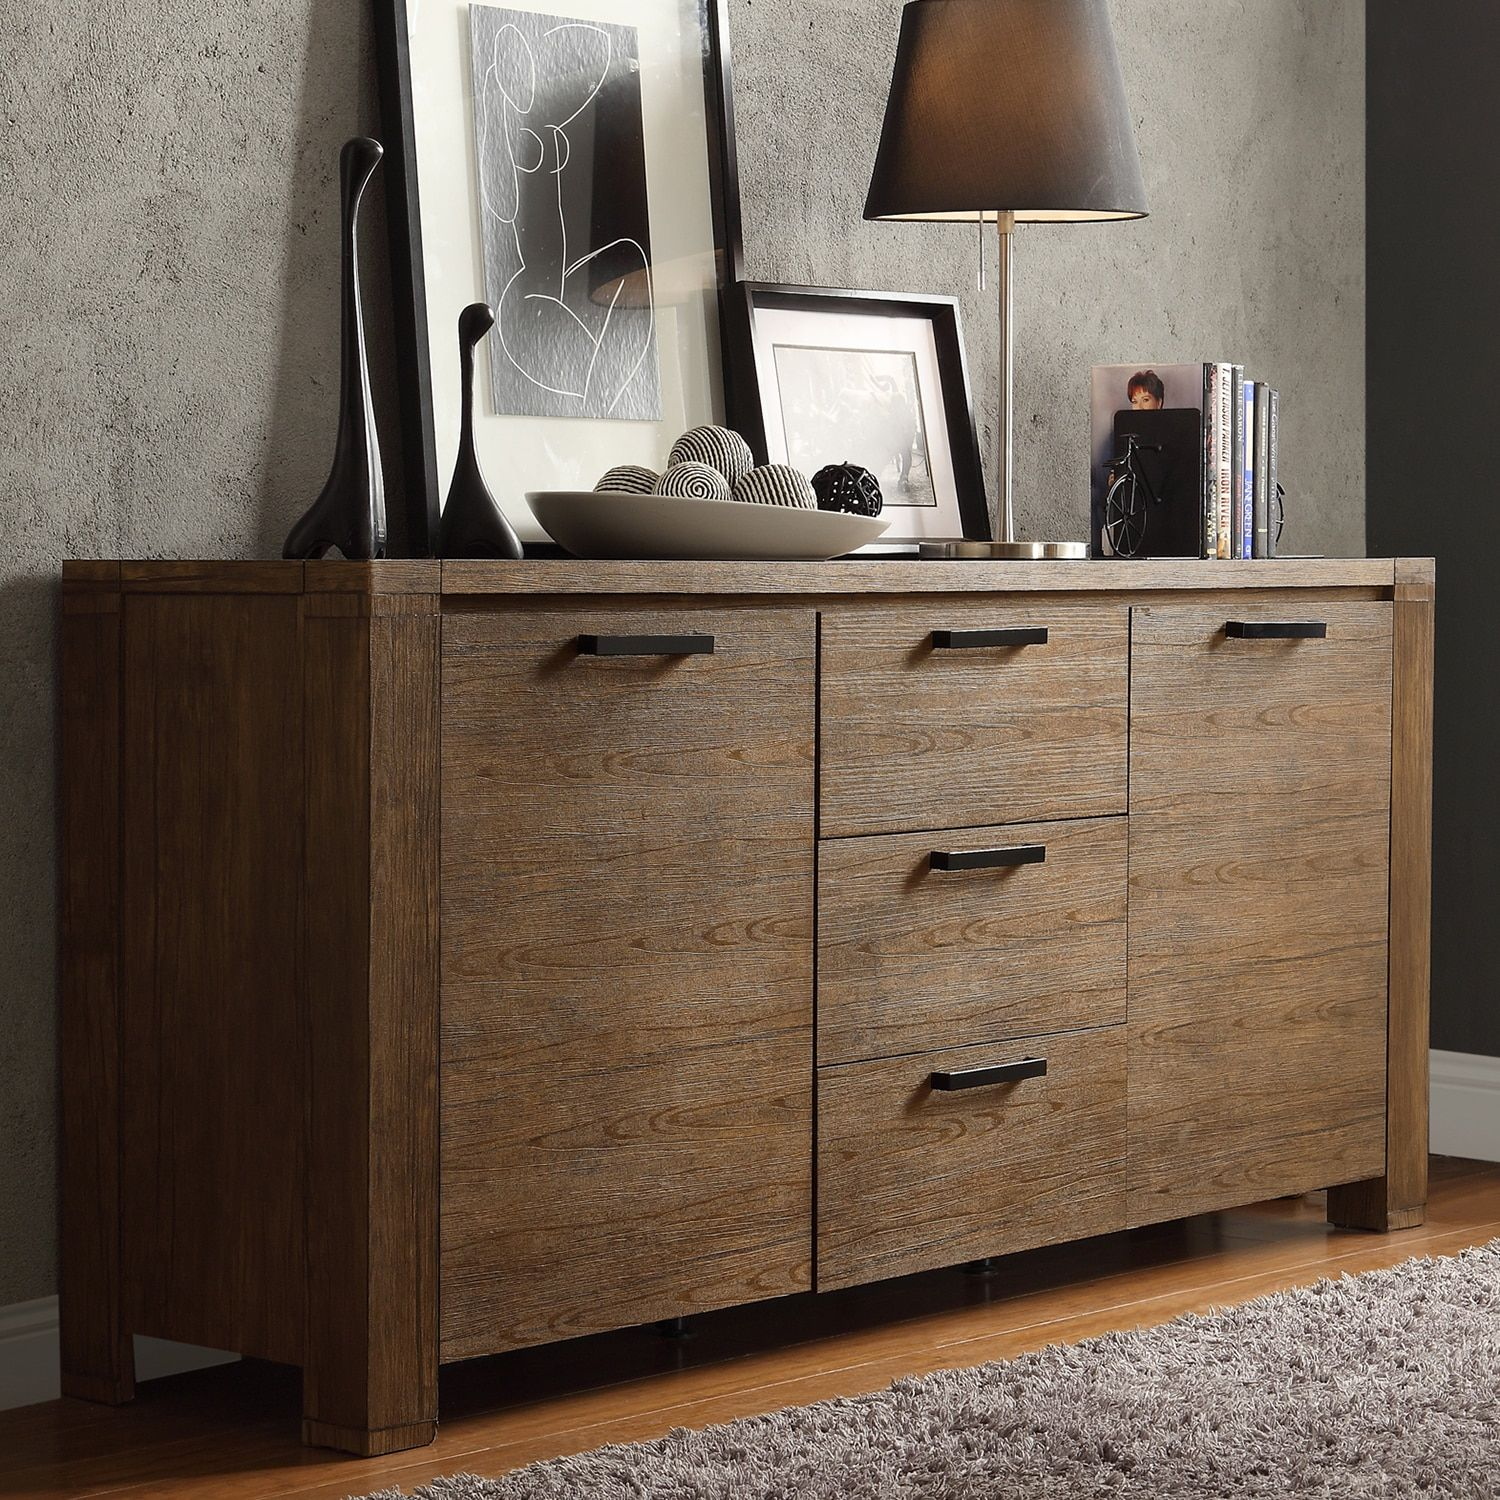 Catalpa Walnut Finish Weathered Sideboard by TRIBECCA HOME by iNSPIRE Q